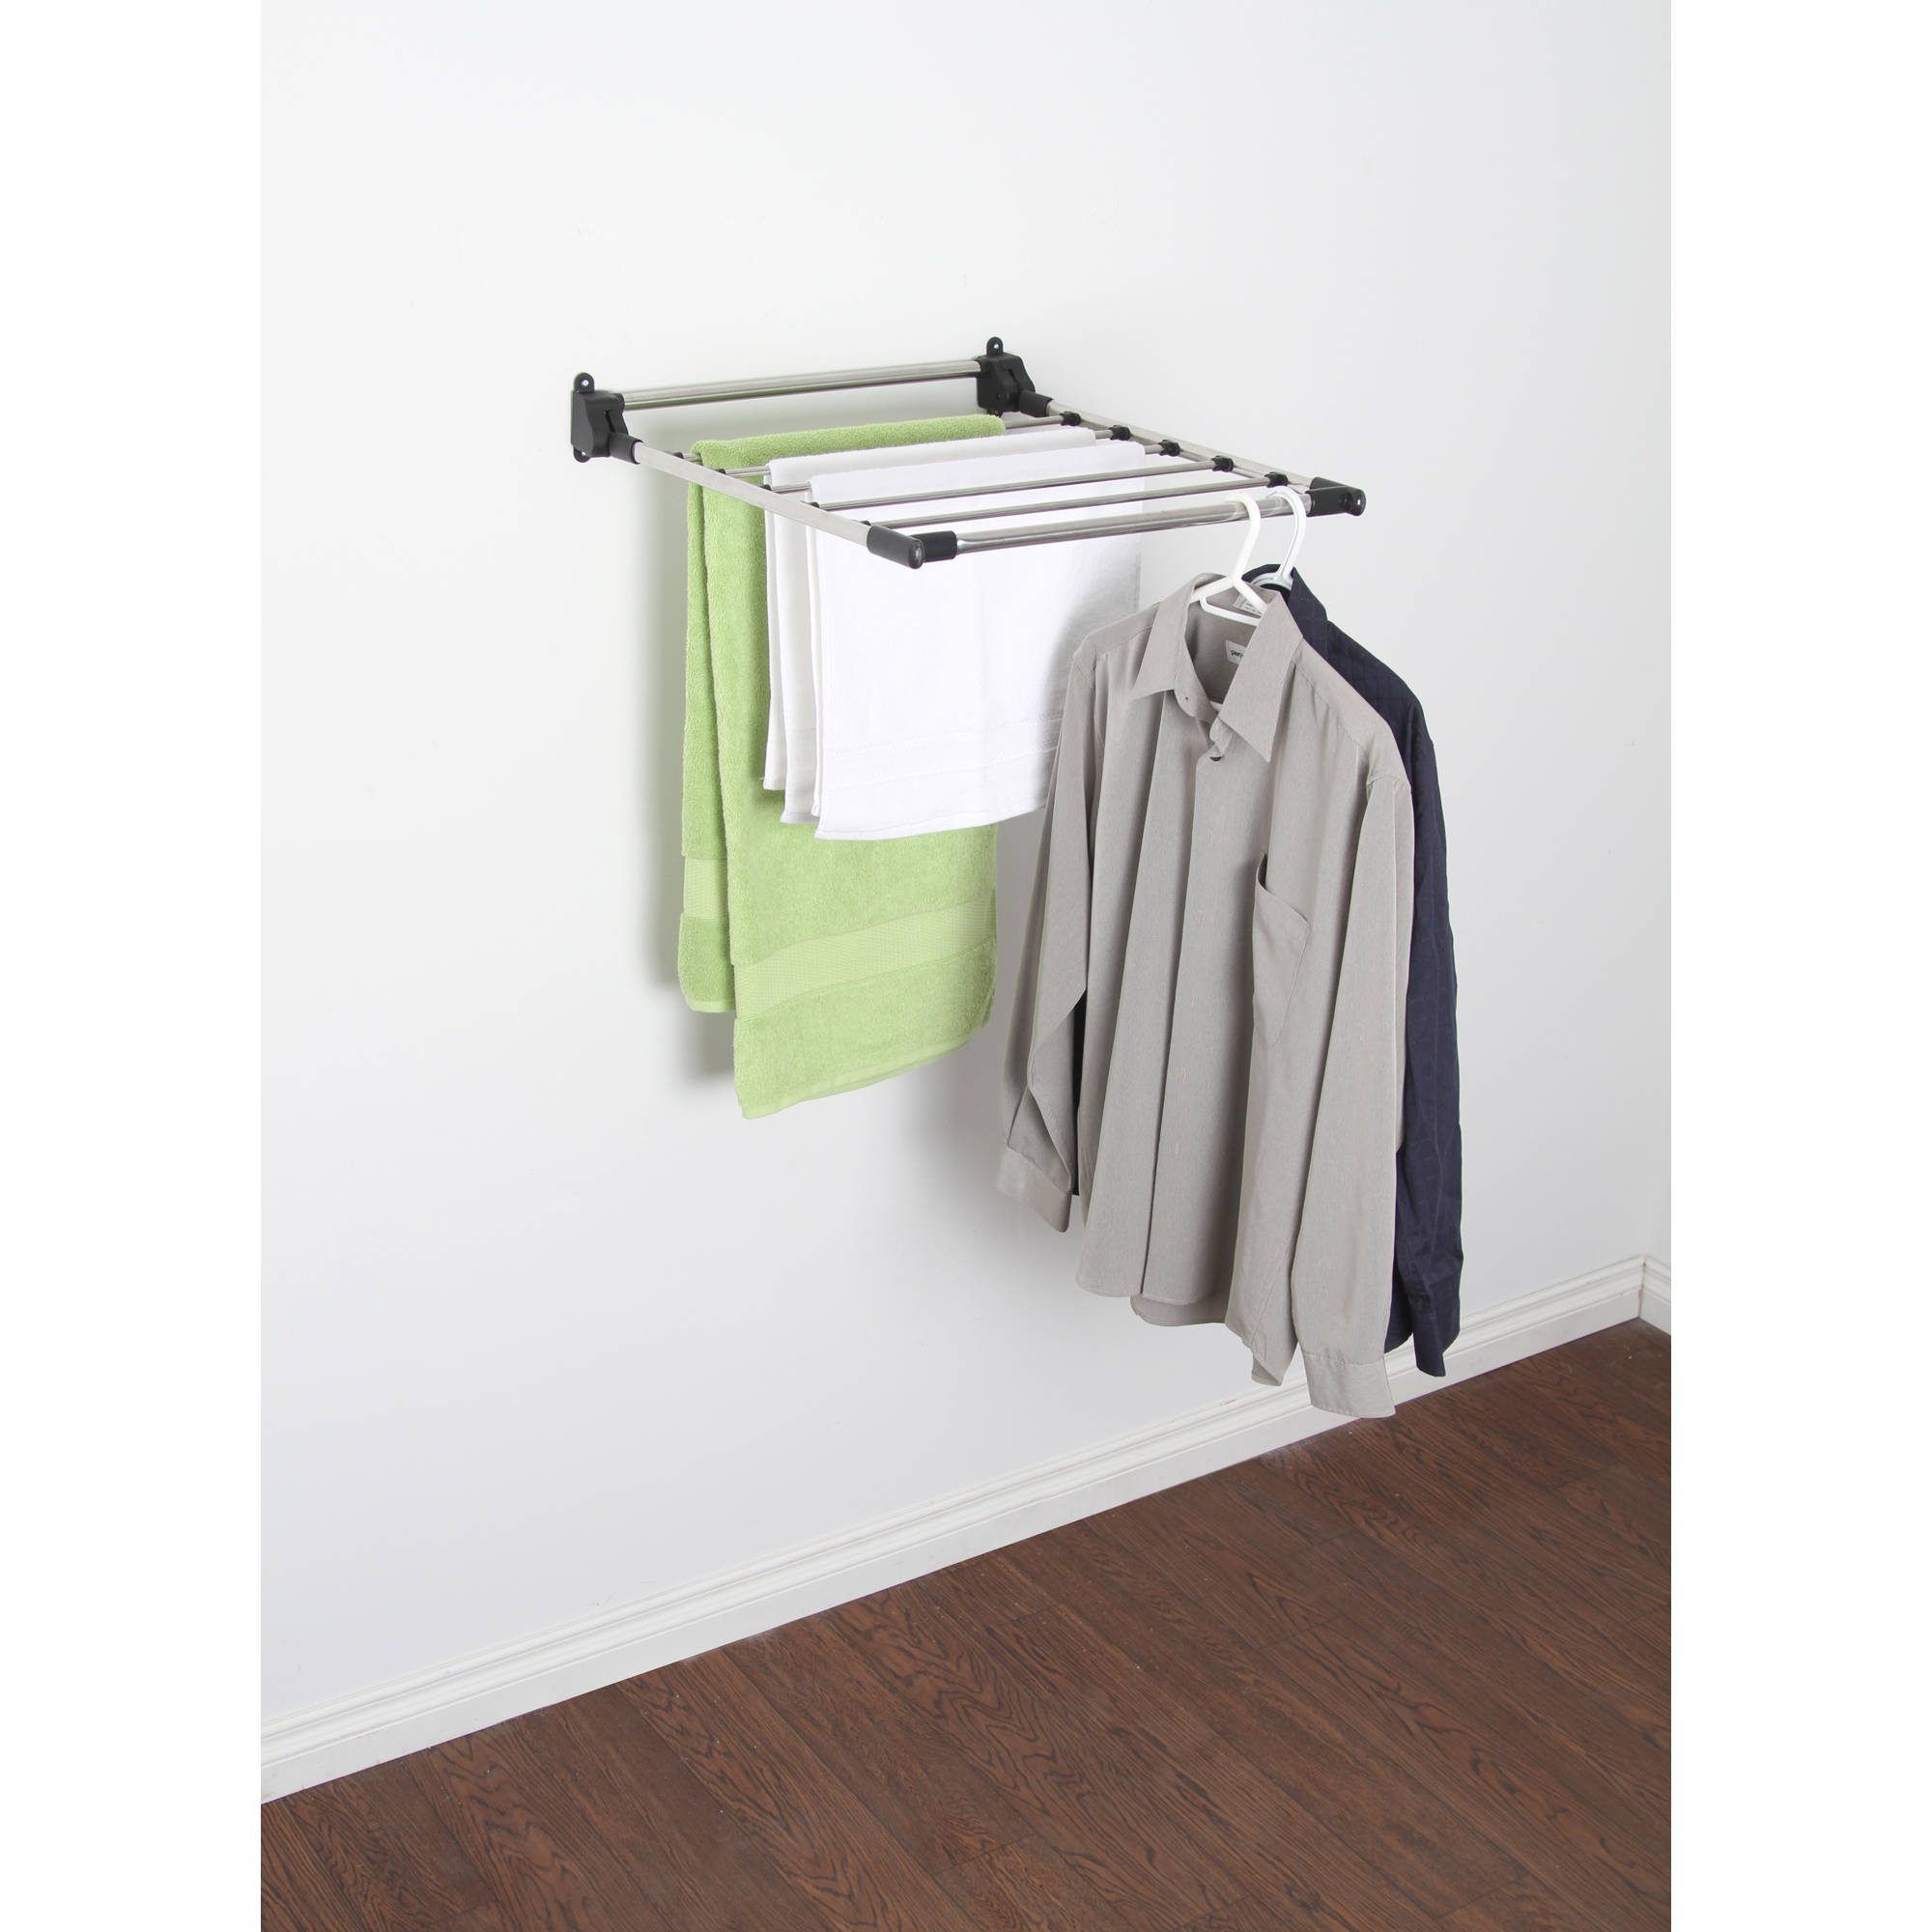 Cozy wall mounted clothes drying rack stainless steel indoor wall-mount drying rack - walmart.com dbxnsfw